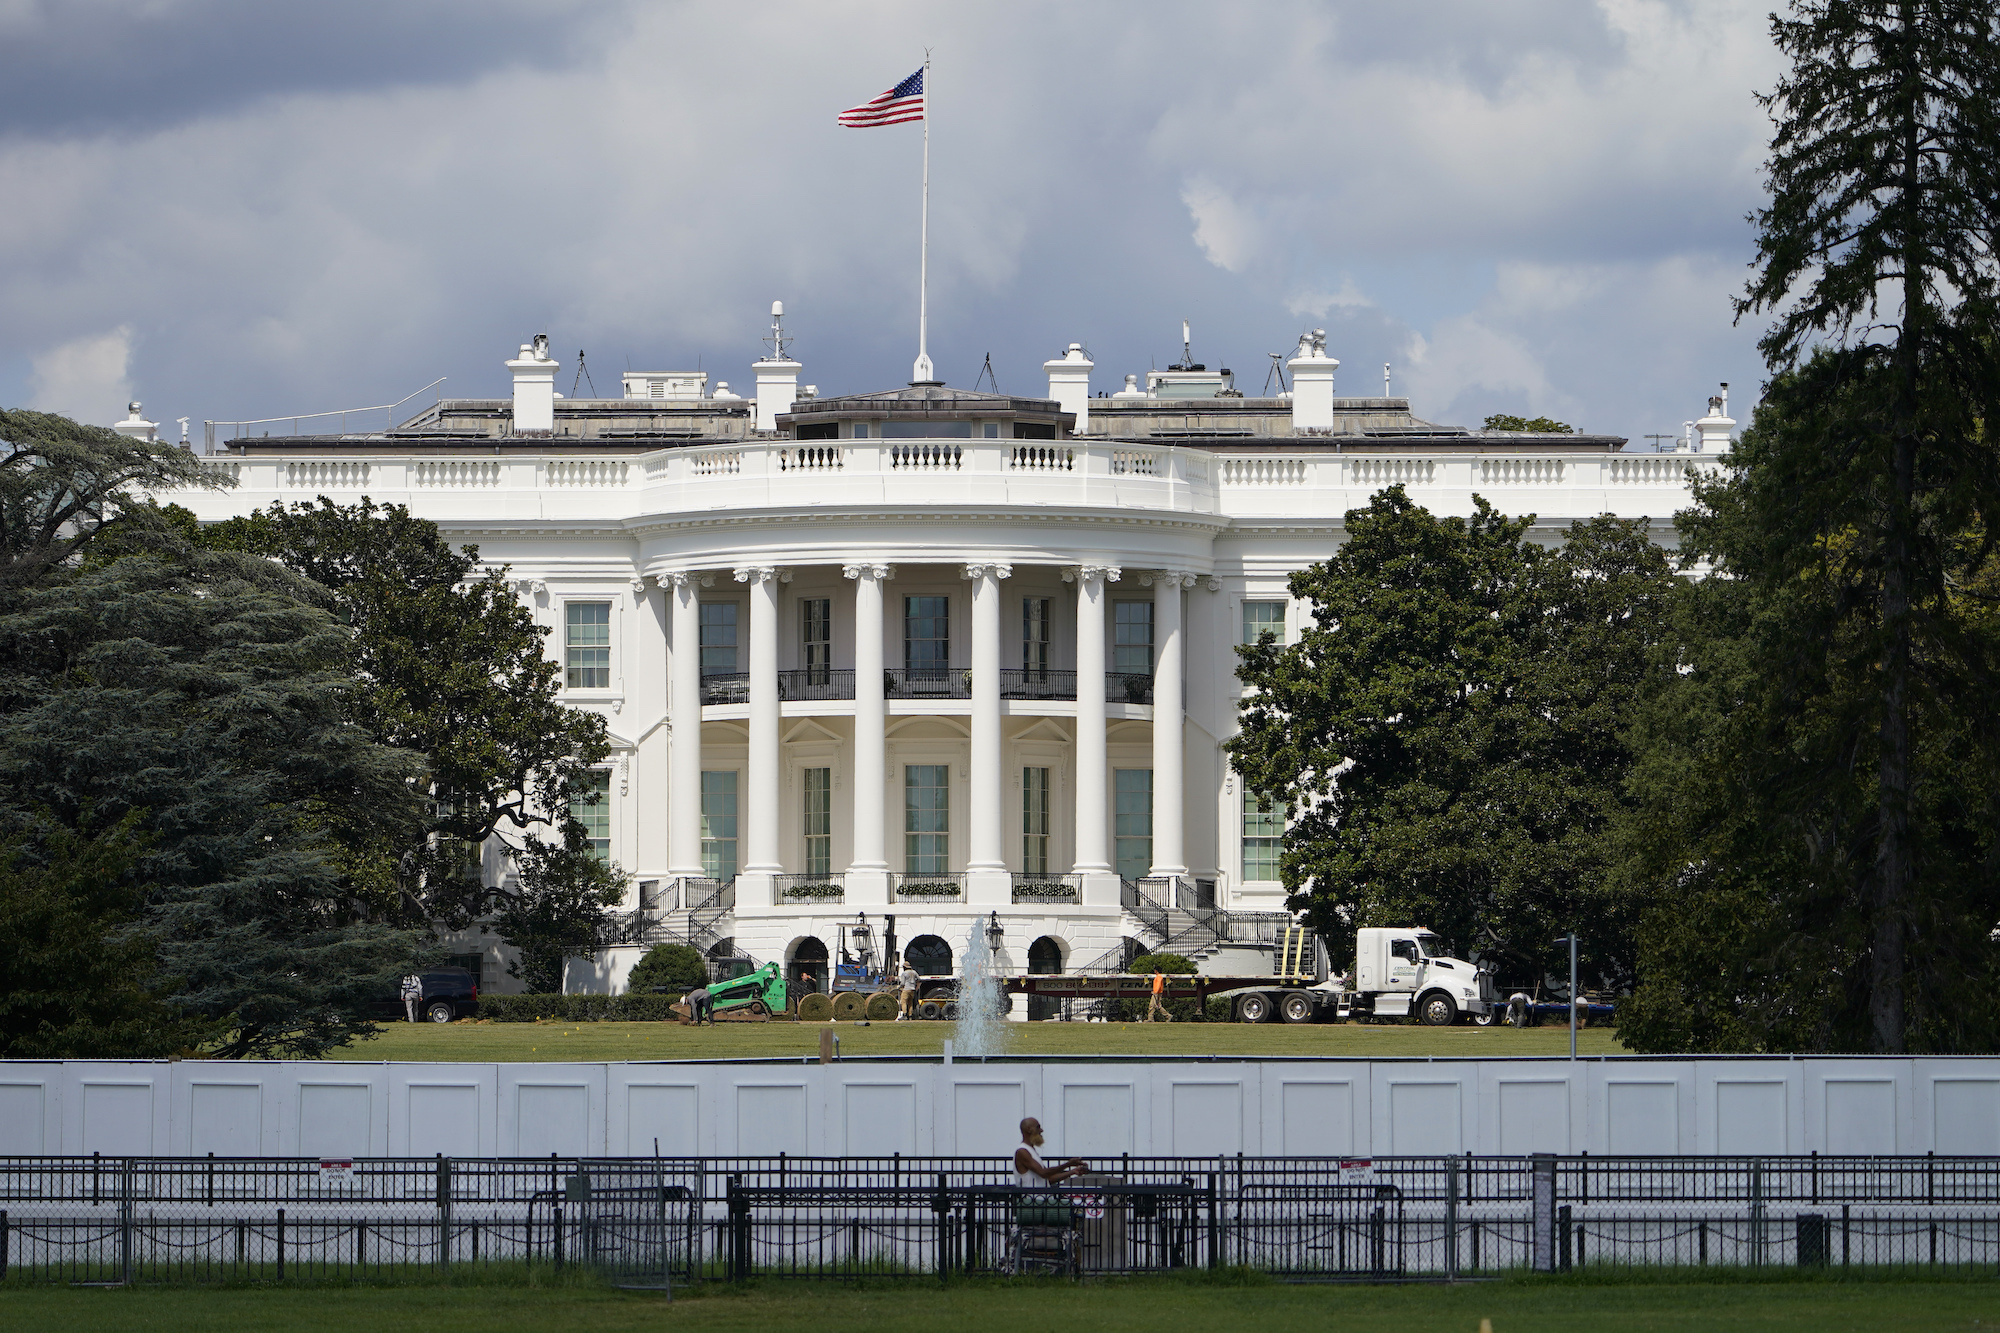 Package Addressed to Trump Containing the Poison Ricin Was Intercepted in White House Mail